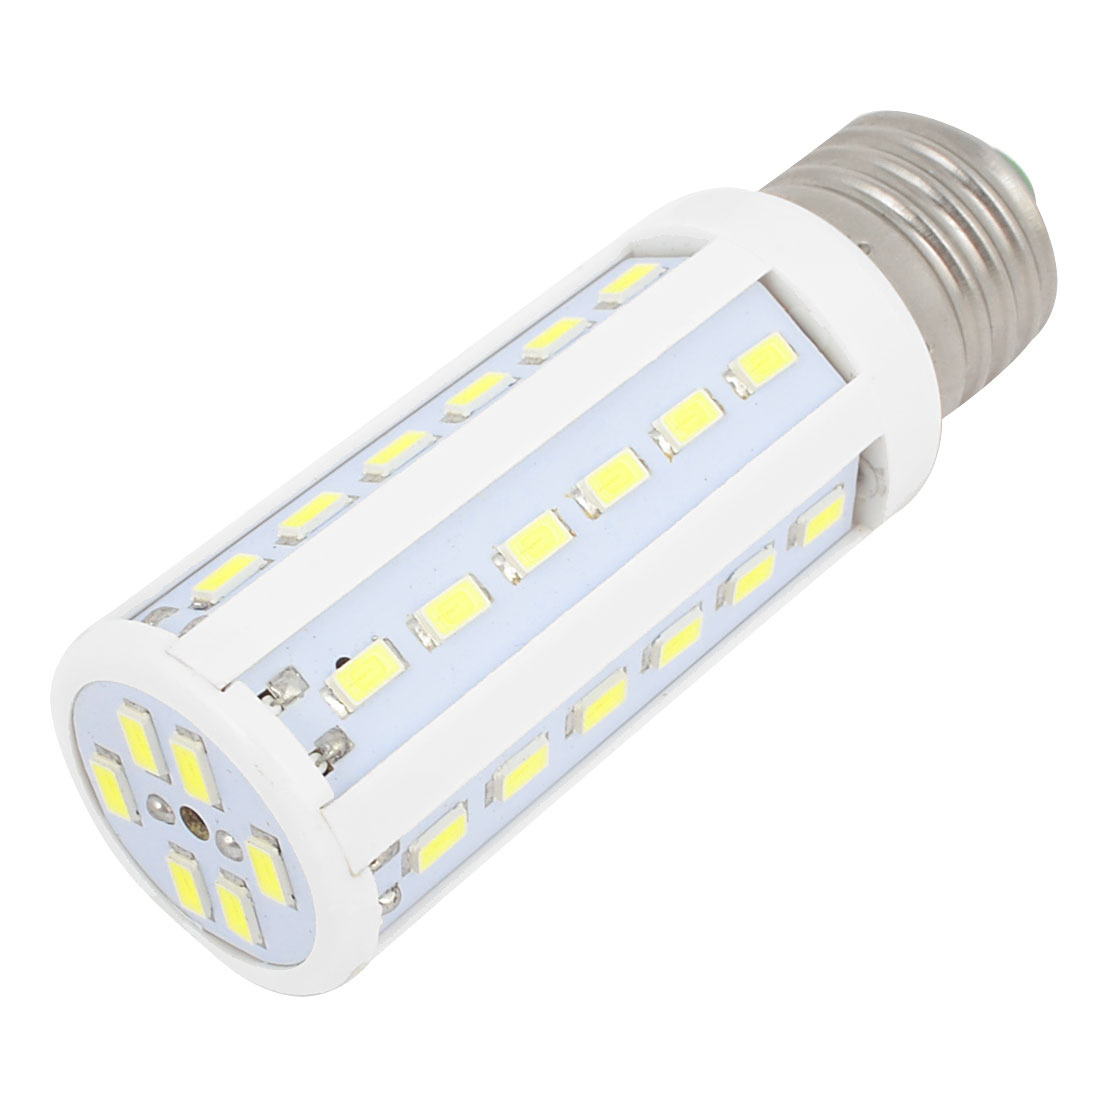 AC200-240V E27 1000Lm 42 LEDs SMD 5630 White LED Corn Light Bulb